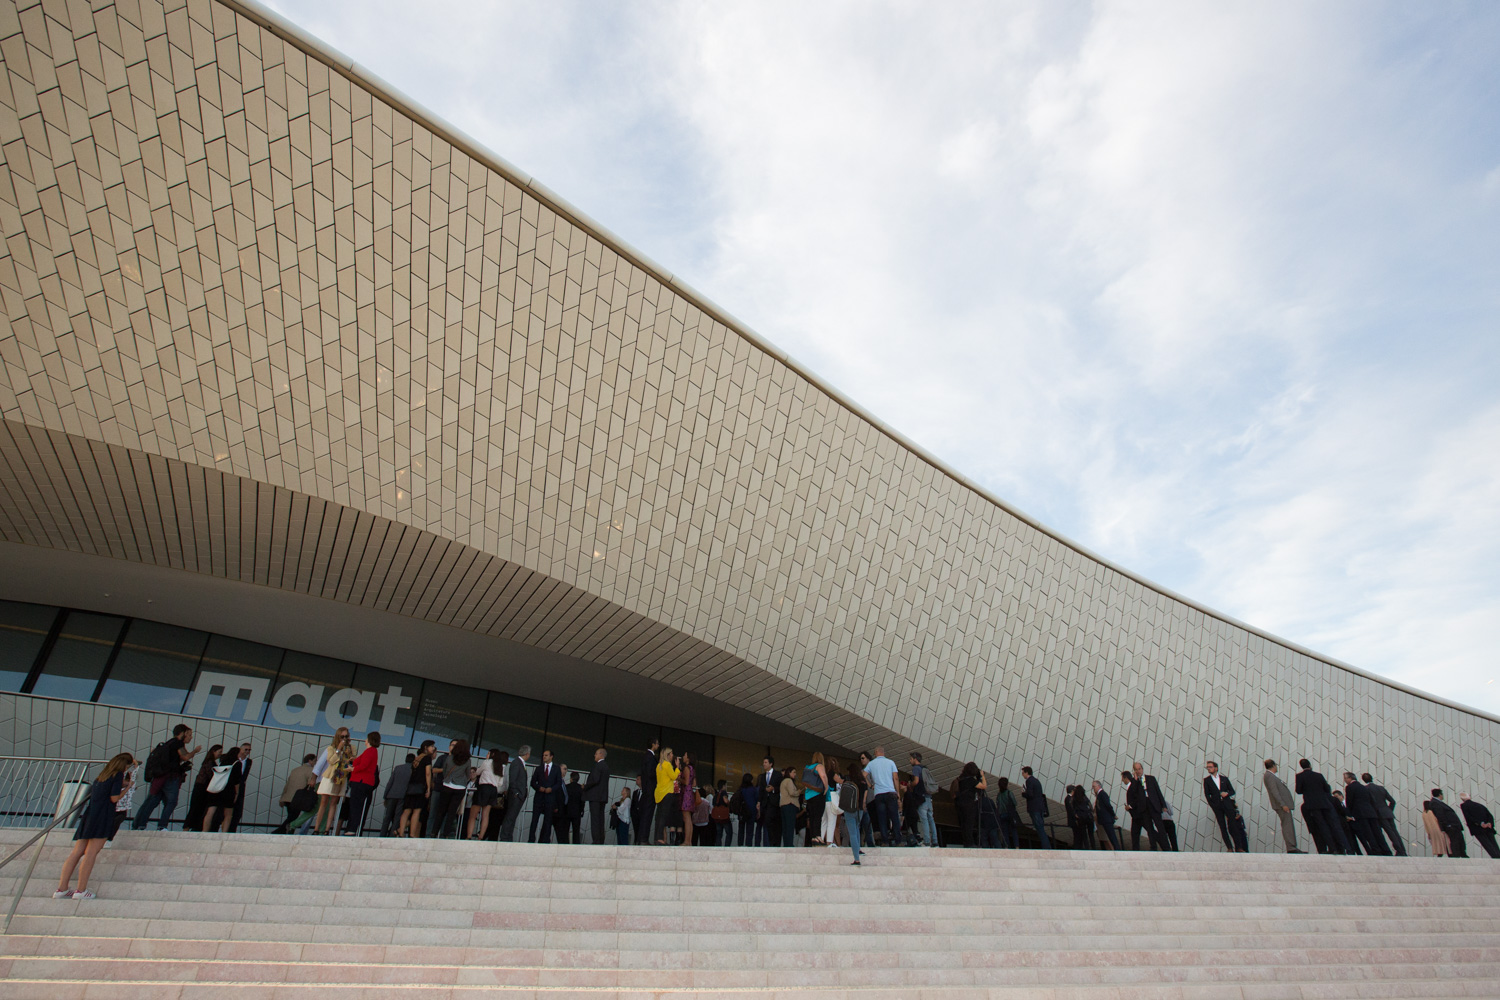 Opening of MAAT, Museum of Art, Architecture and Technology, on the Tagus River in Belém, Lisbon, designed by the British architect Amanda Levete. Photos: Miguel Manso / Xposed